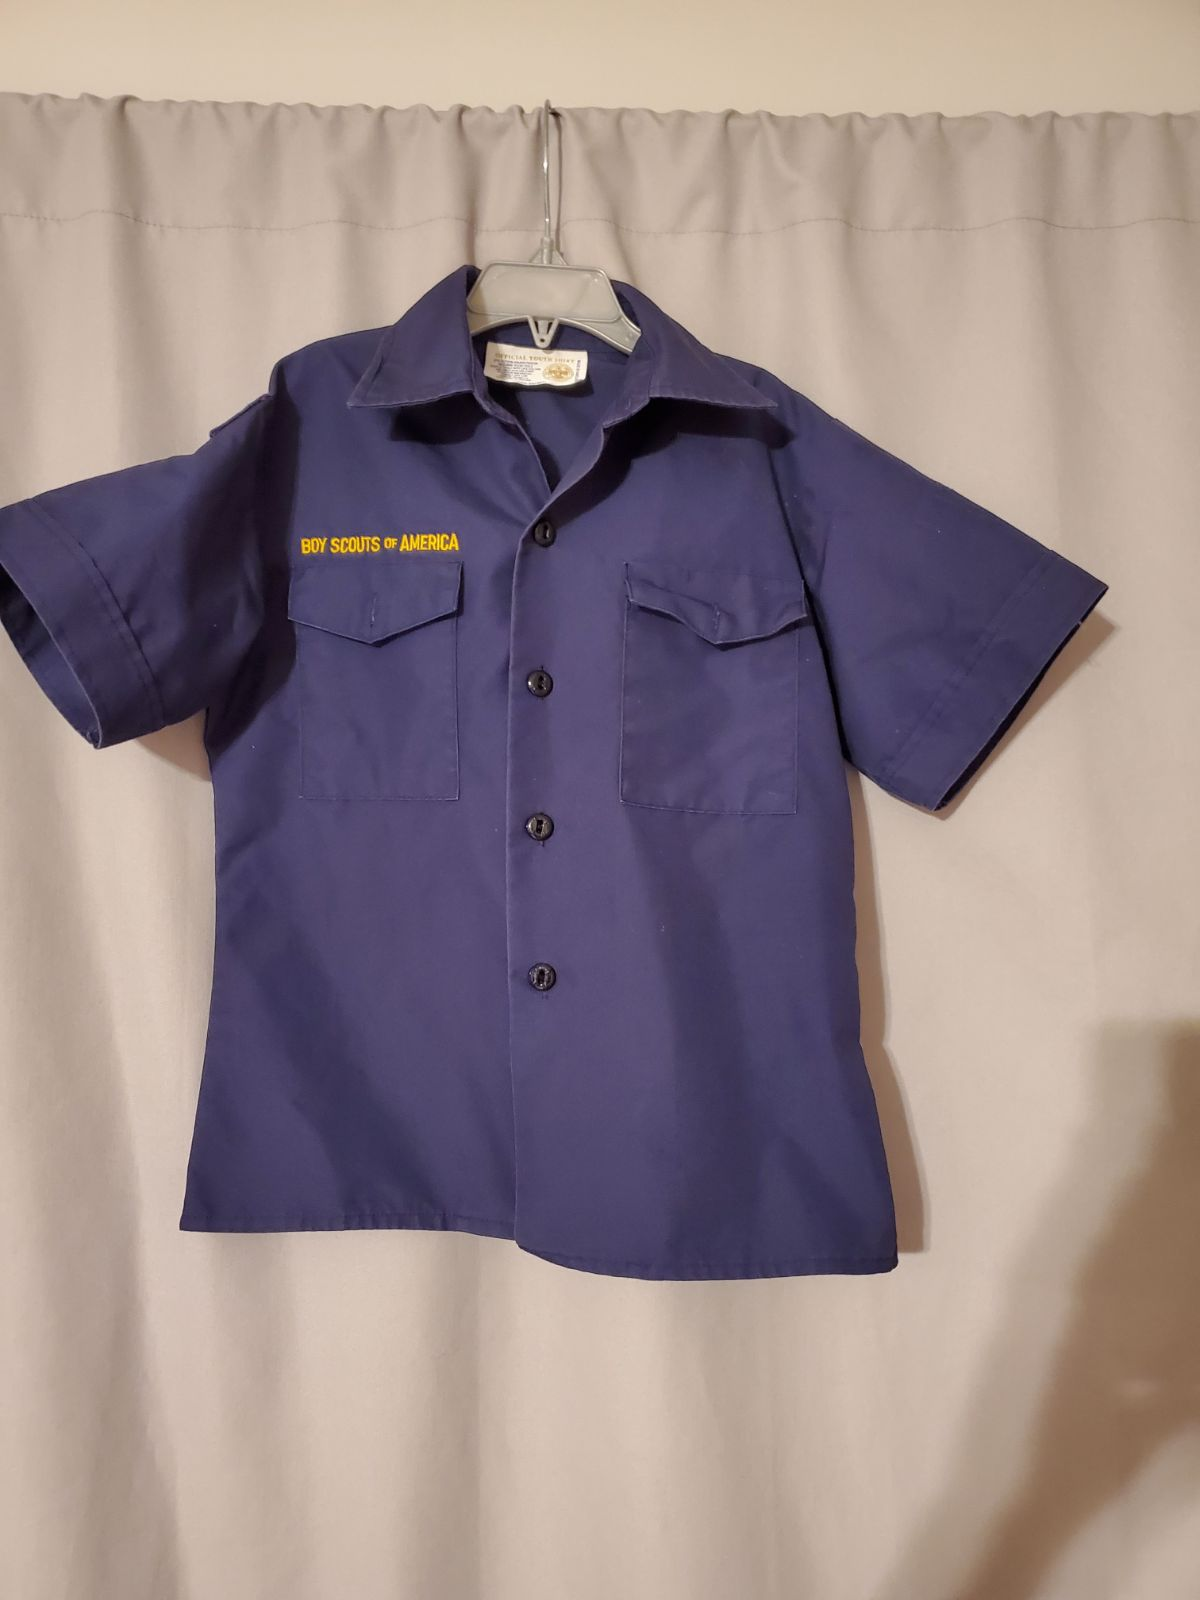 Youth Small Cub Scouts Uniform shirt